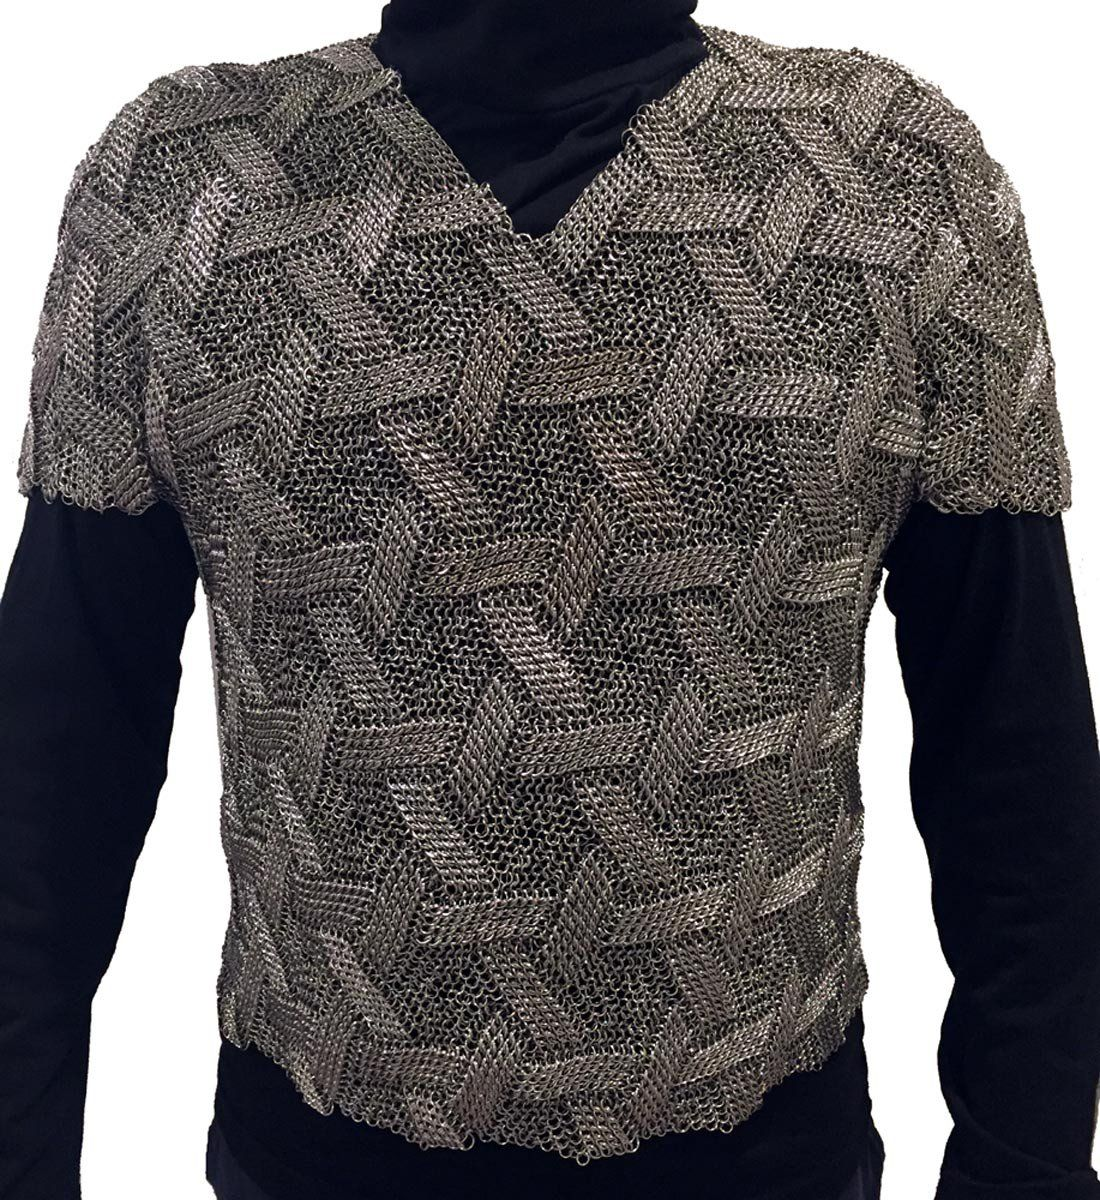 Star Of David Patterned Shirt Stats Half Persian 3 1 Sheet 6 And European 4 1 Around 44 000 Rings Total C Dr Chainmail Clothing Chainmail Armor Chain Mail